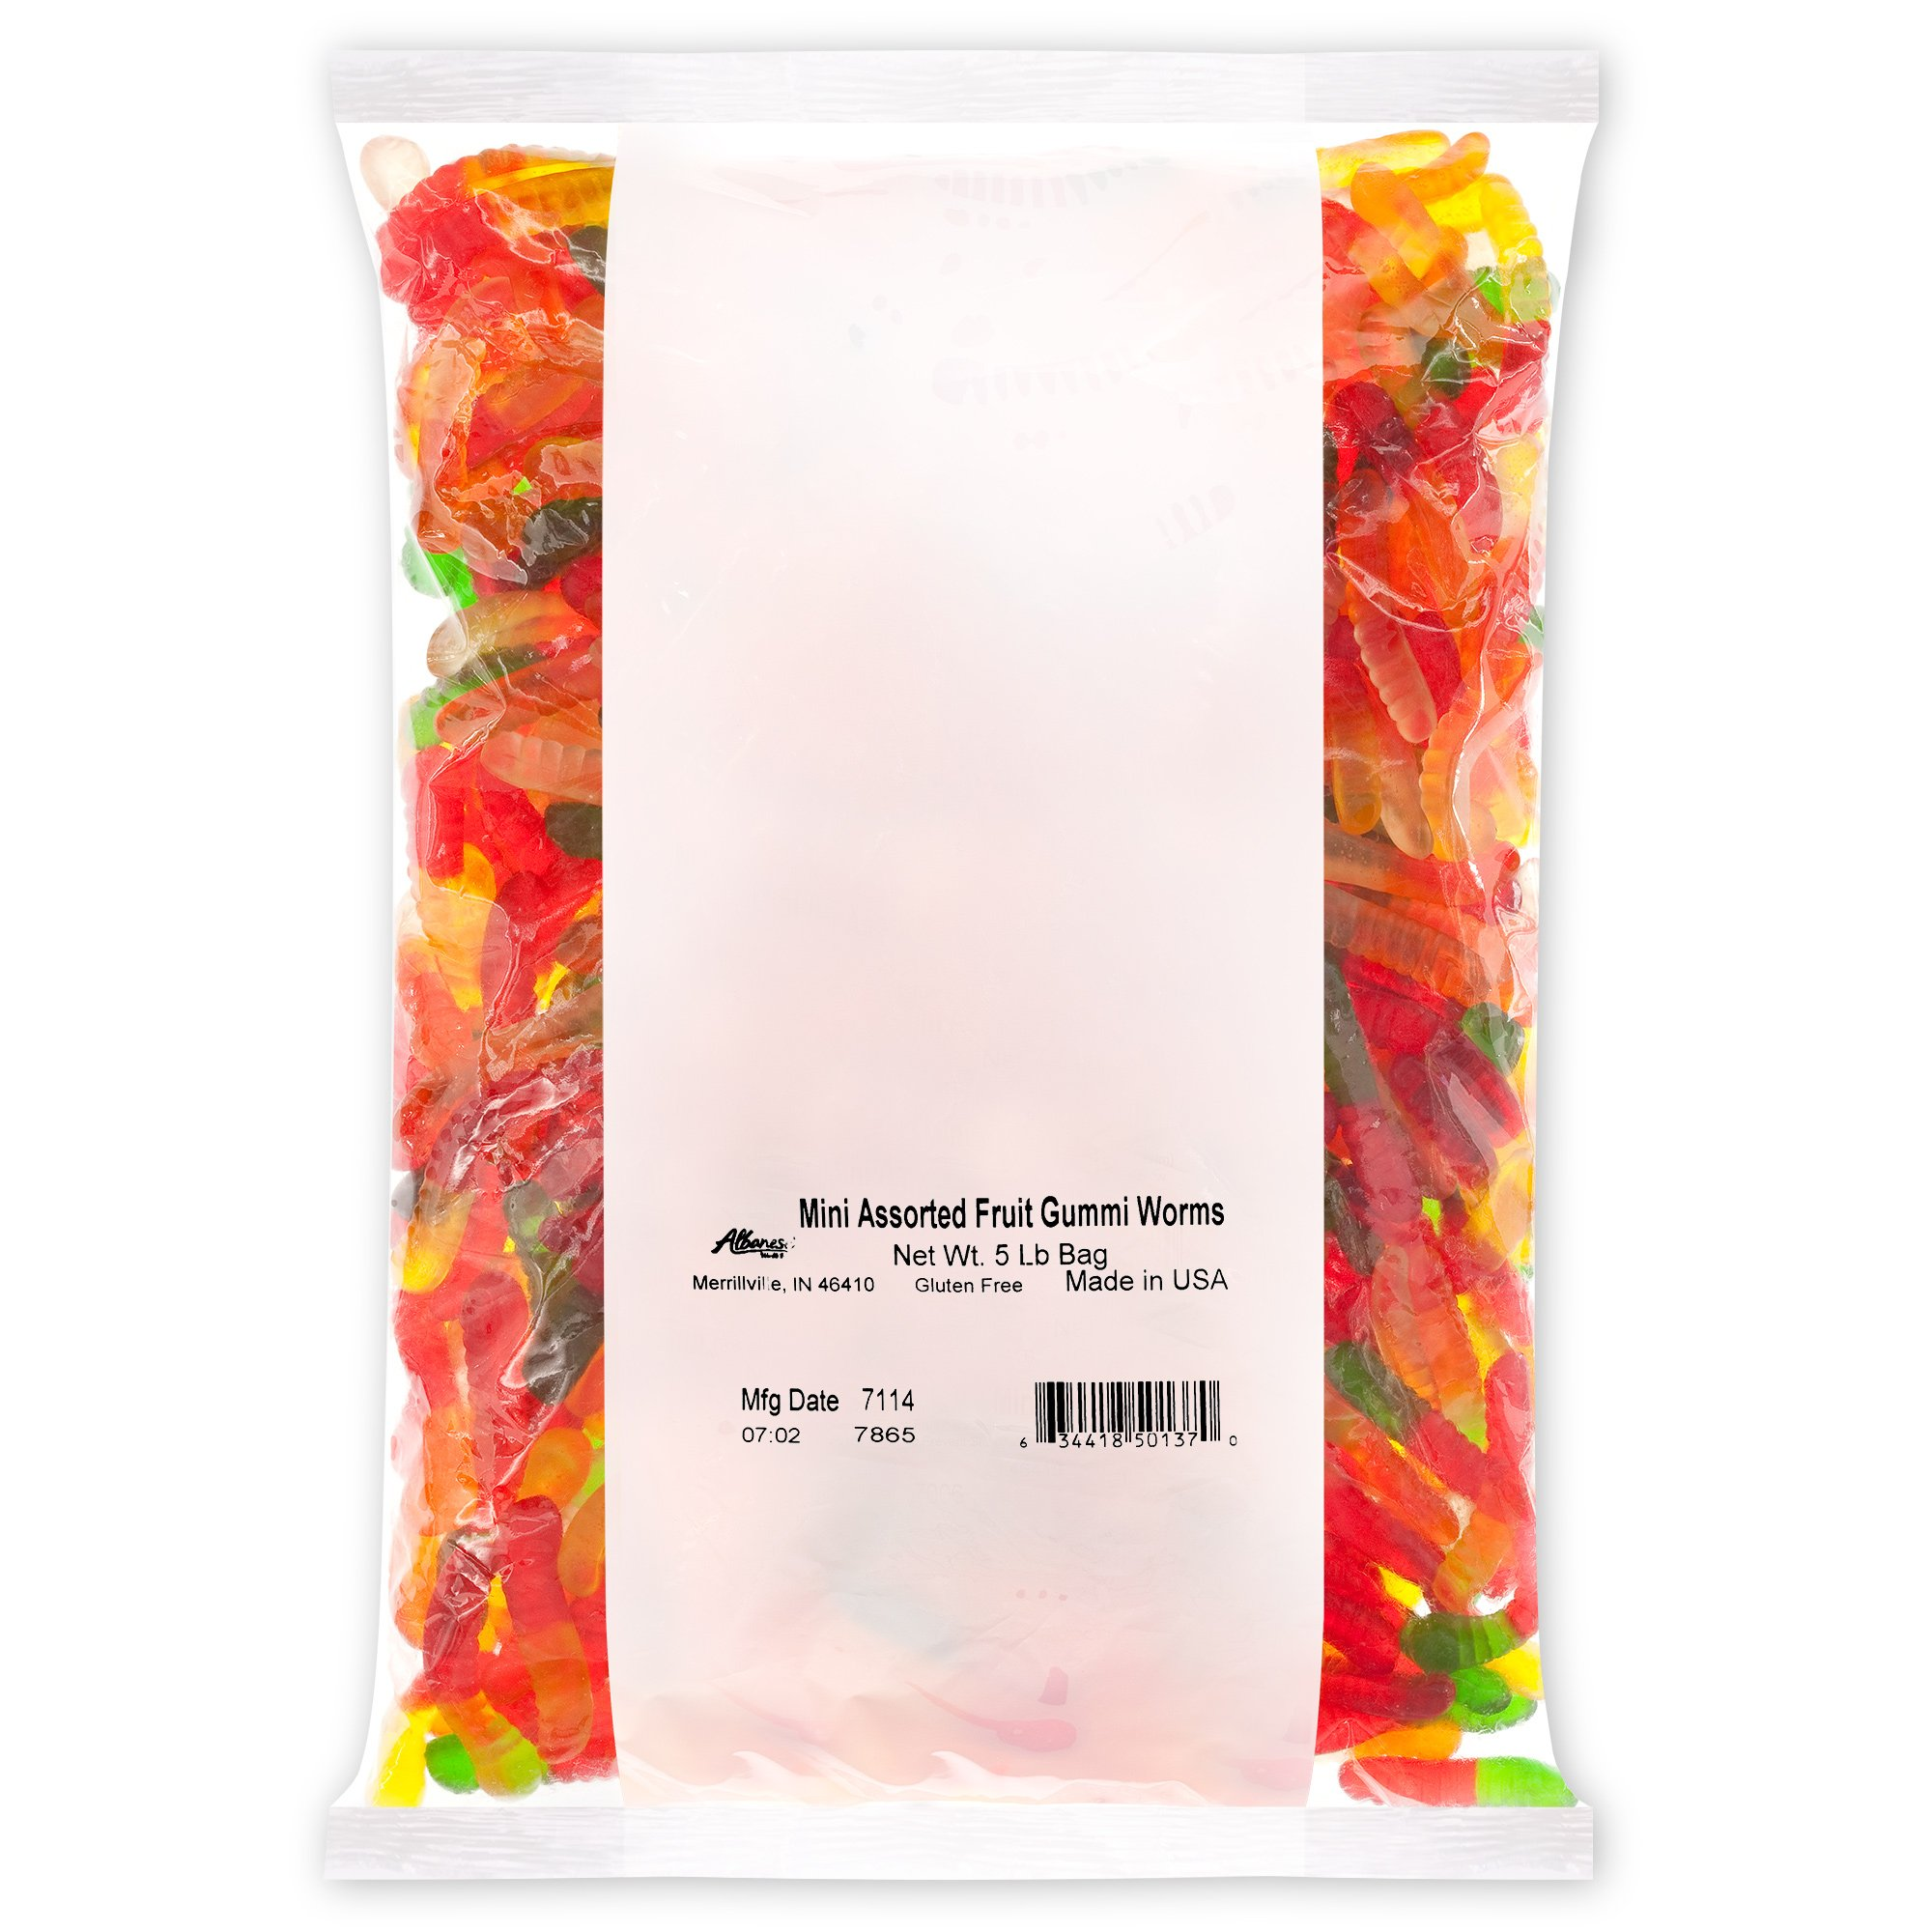 Albanese Candy Mini Assorted Fruit Gummi Worms (1) 5 Pound Bag, Gummi Candy, Assorted Fruit Flavors, Gluten Free, Dairy Free, Fat Free